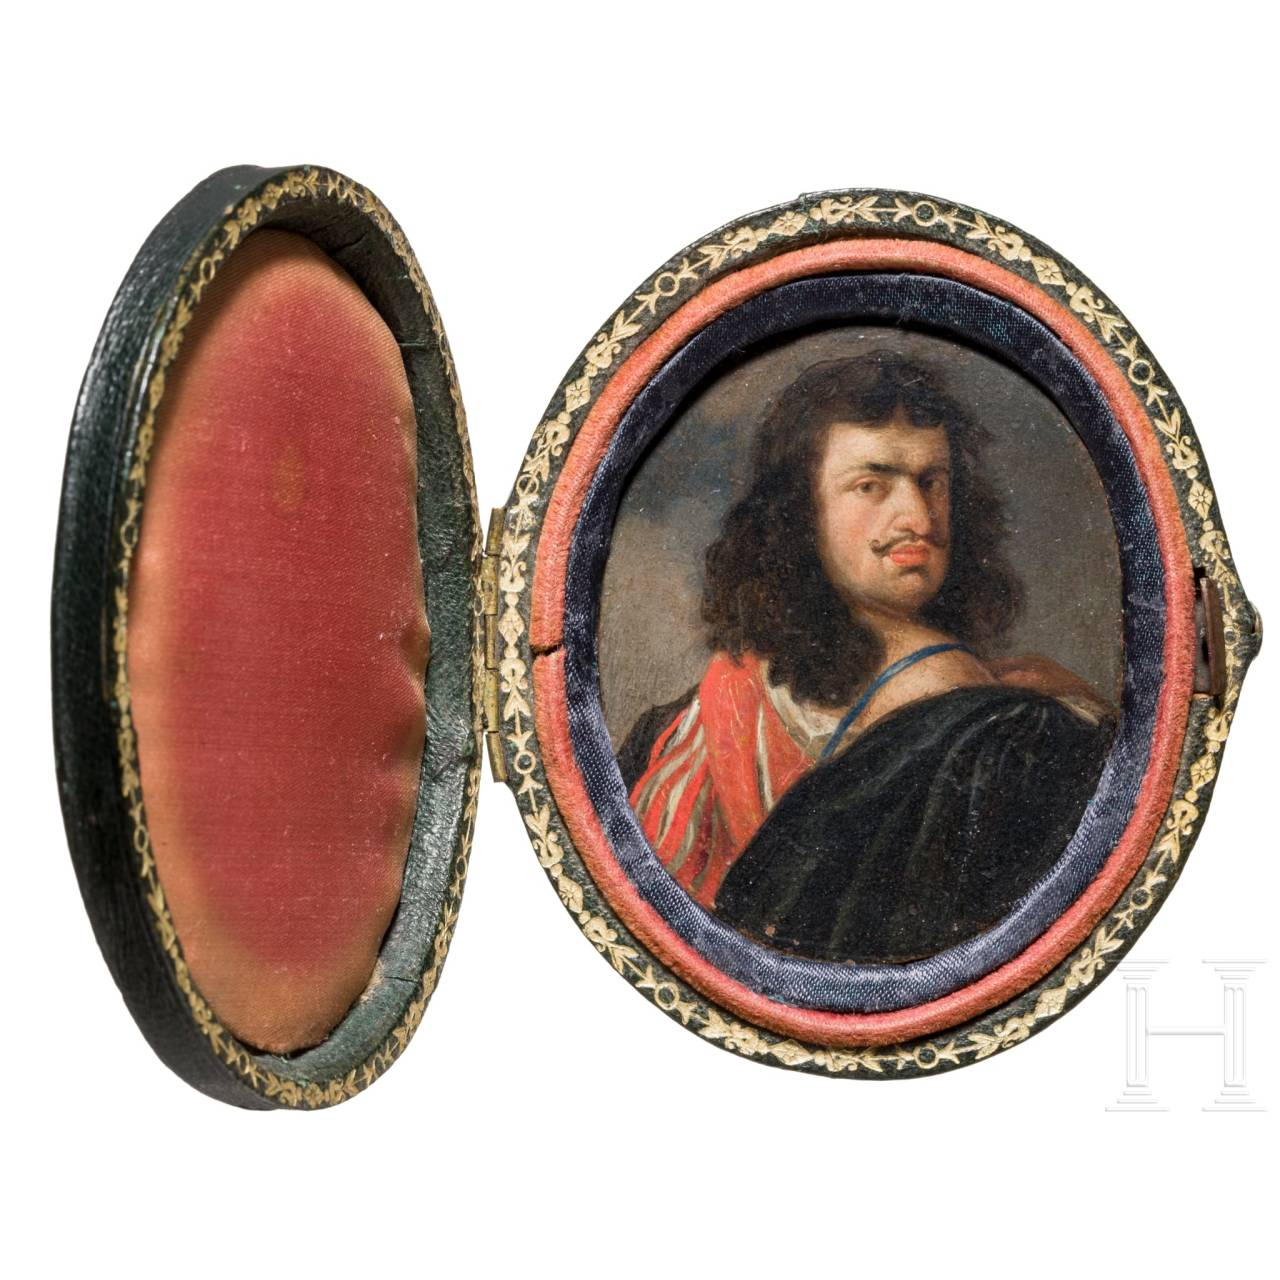 Gonzales Coques (Antwerp 1614 - 1684), a miniature painting, probably a portrait of the artist Van Dyke